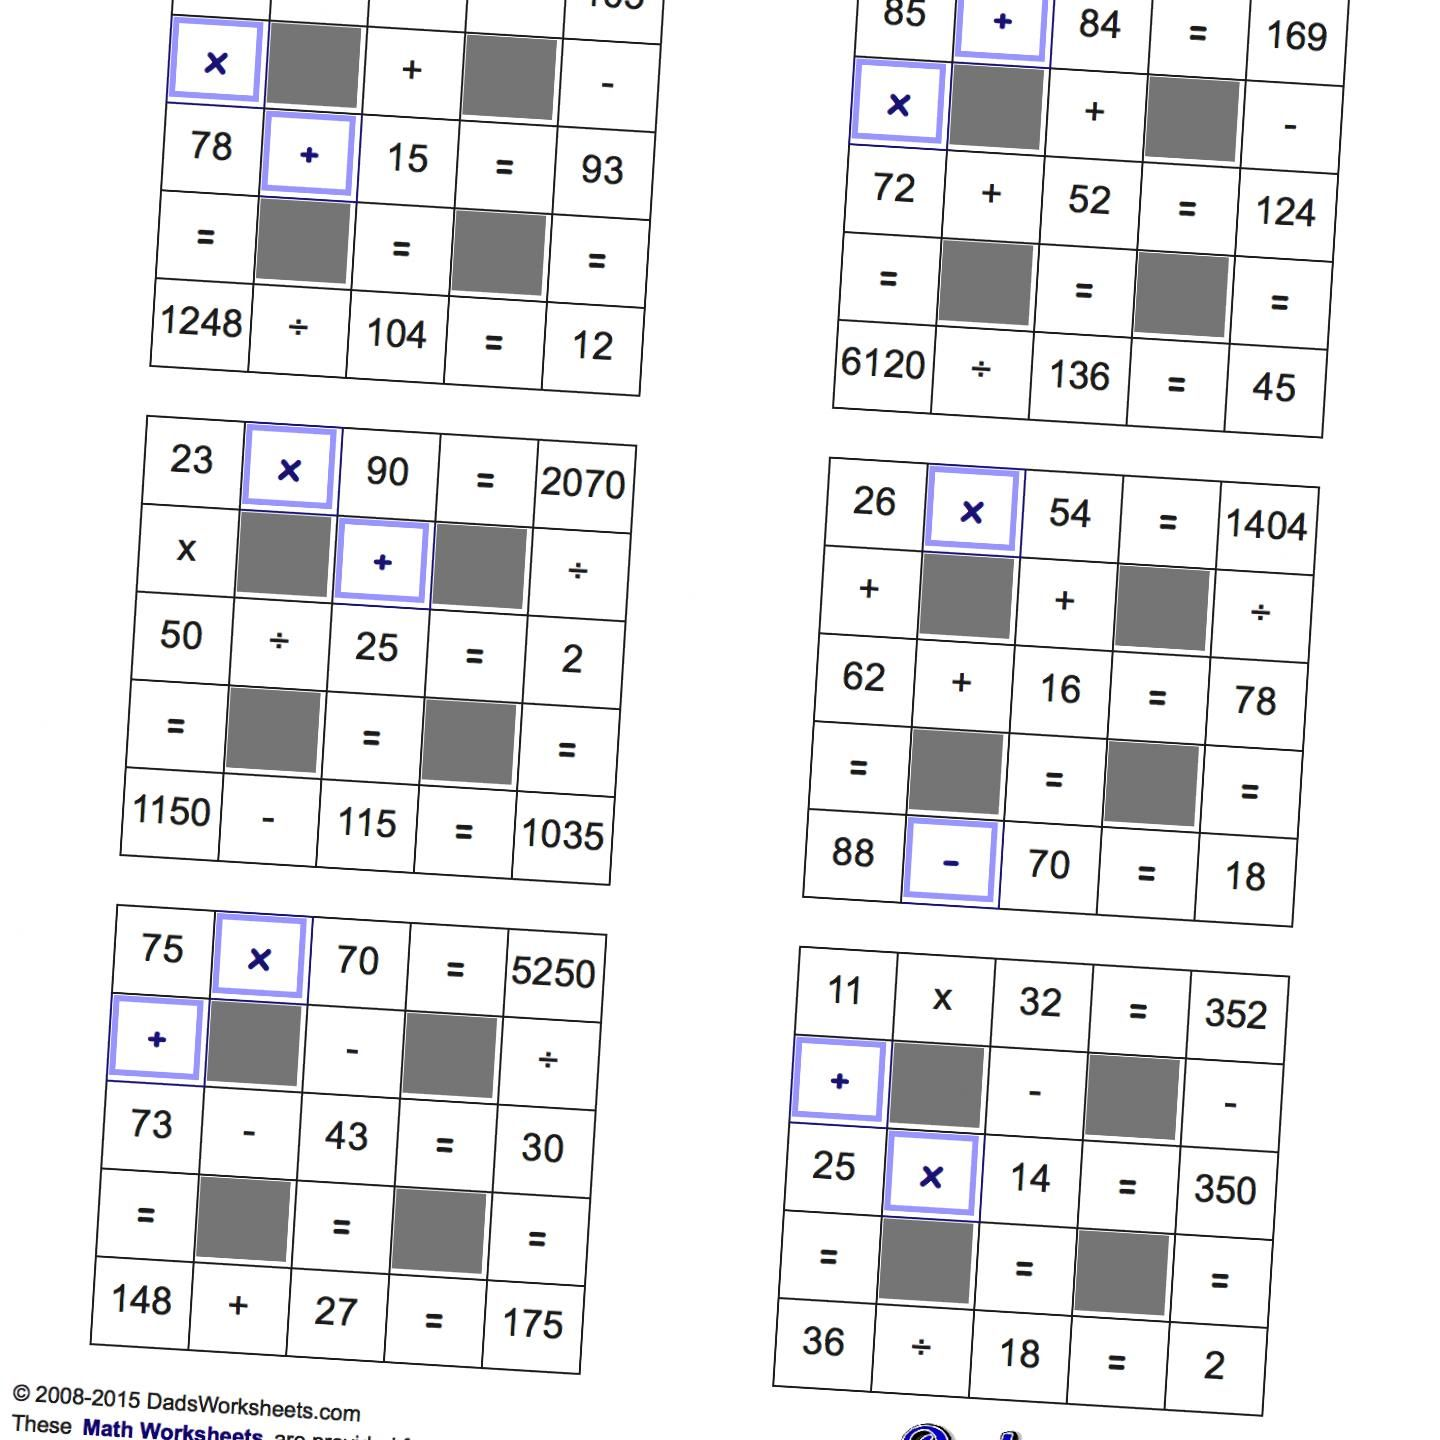 Math Worksheets: All Operations Grid Puzzles with Missing Values and ...